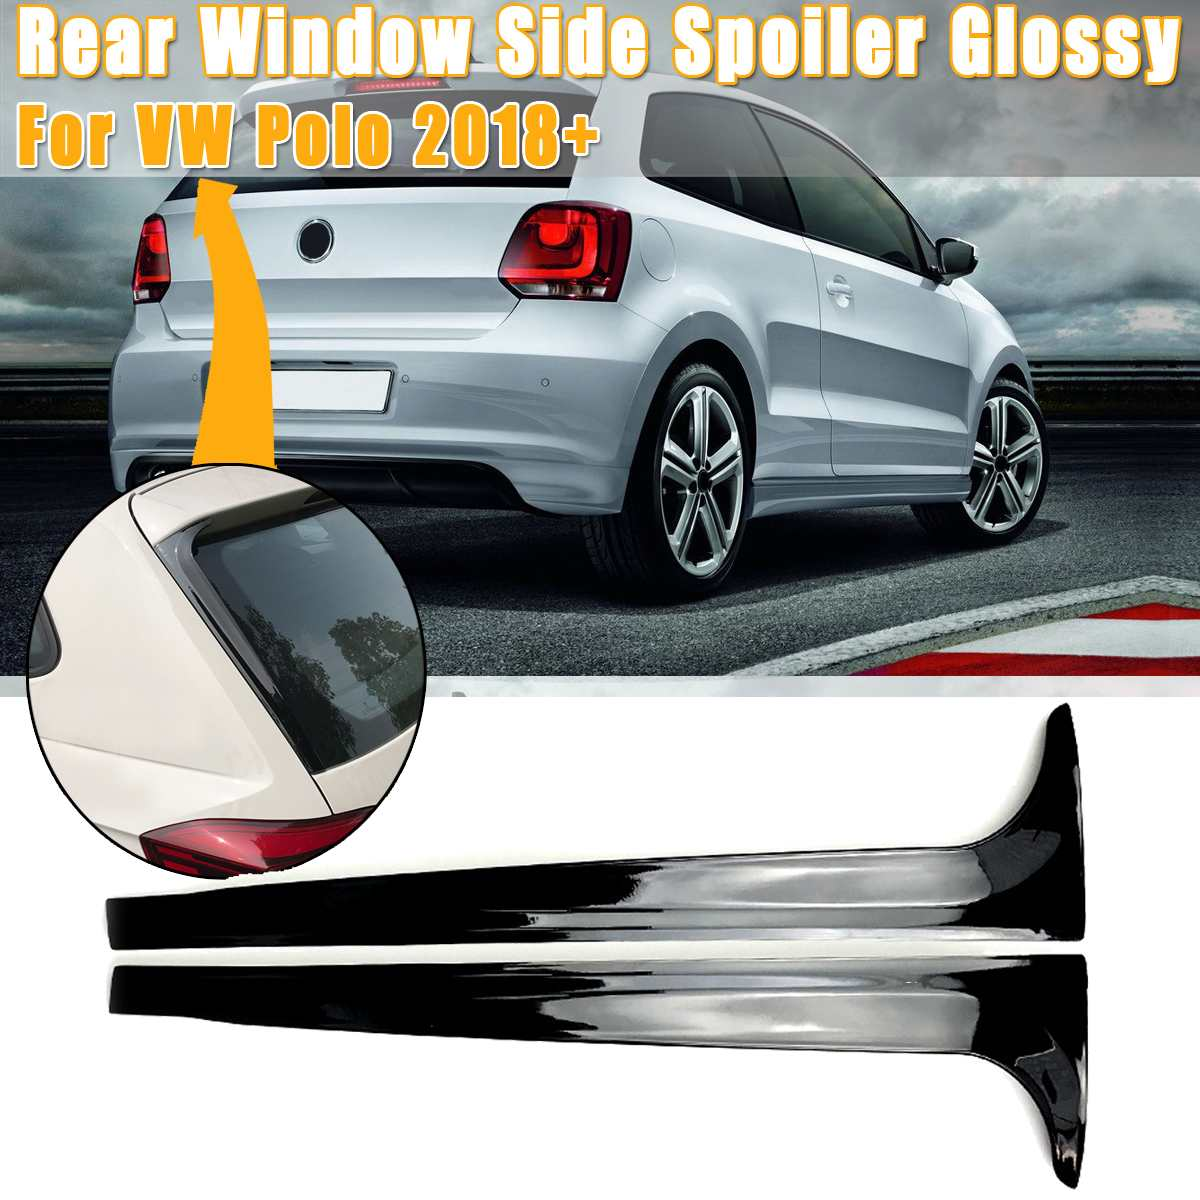 2PCS Rear Window Side Spoilers Glossy Canard Canards Splitter For VW for Polo MK5 2011-2017 MK6 2018 2019  Car Styling Accessori